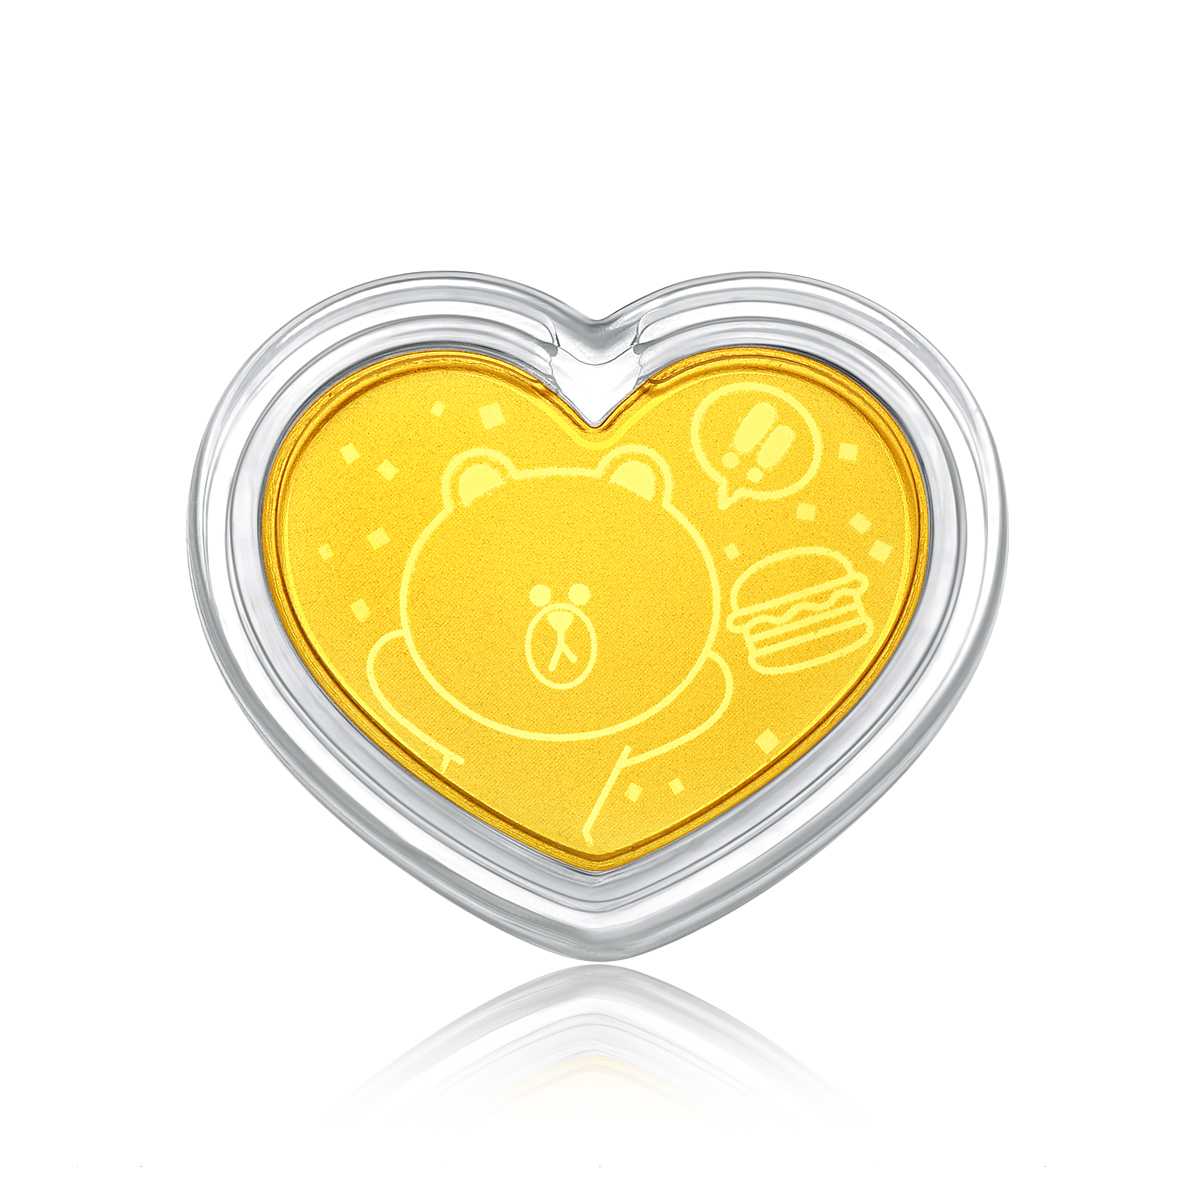 LINE FRIENDS Collection: BROWN 999.9 Gold Coin